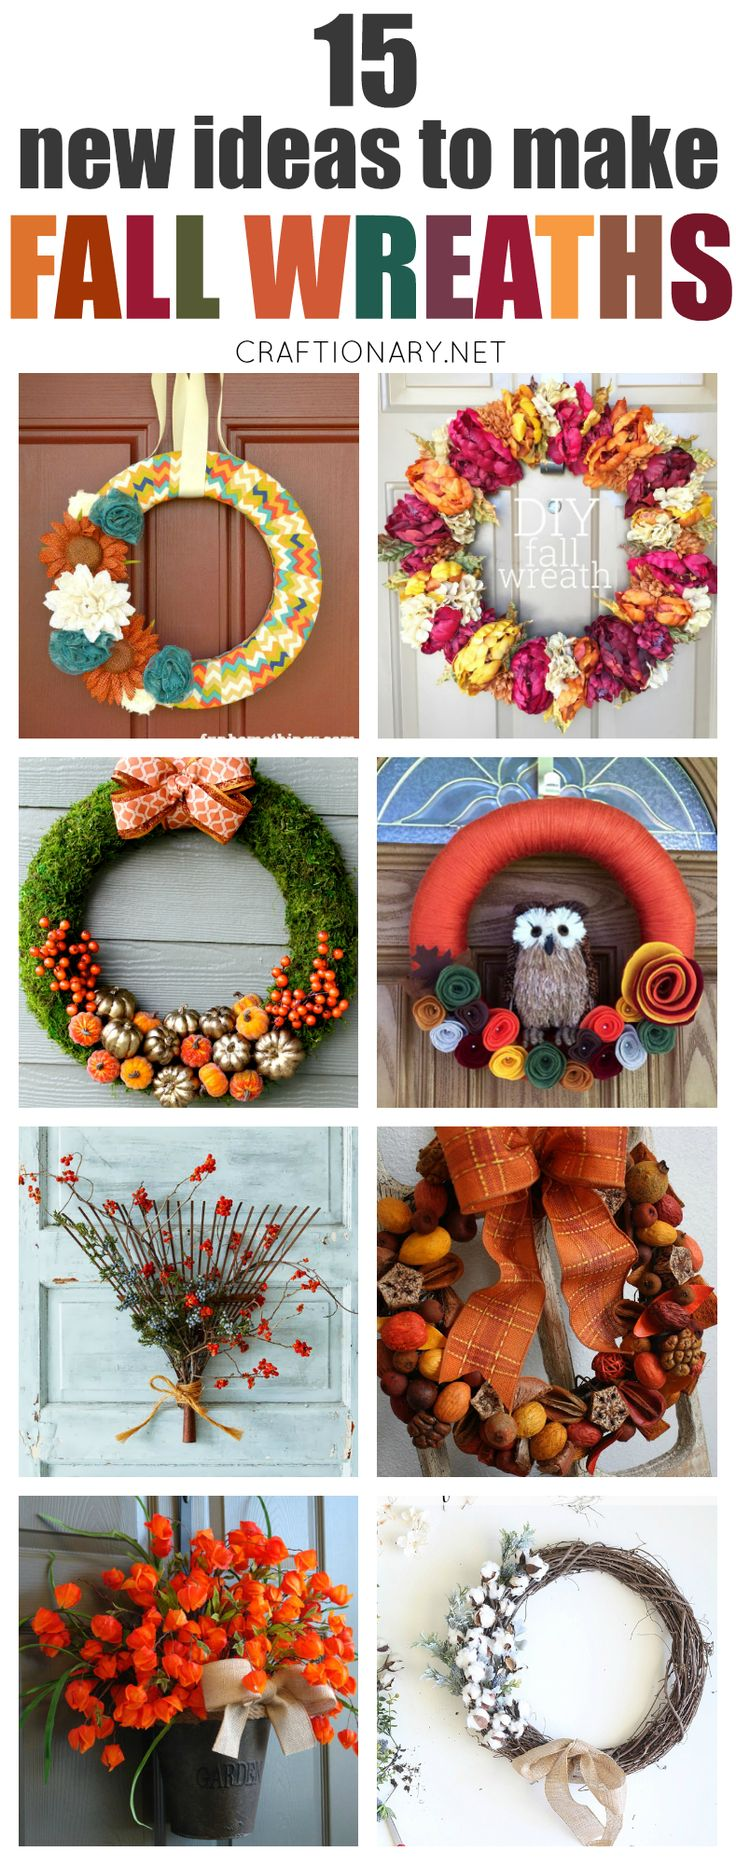 Best DIY Fall wreaths for home decor have been carefully selected using new, modern and unique ideas to help you make wreaths that are impressive & stylish.